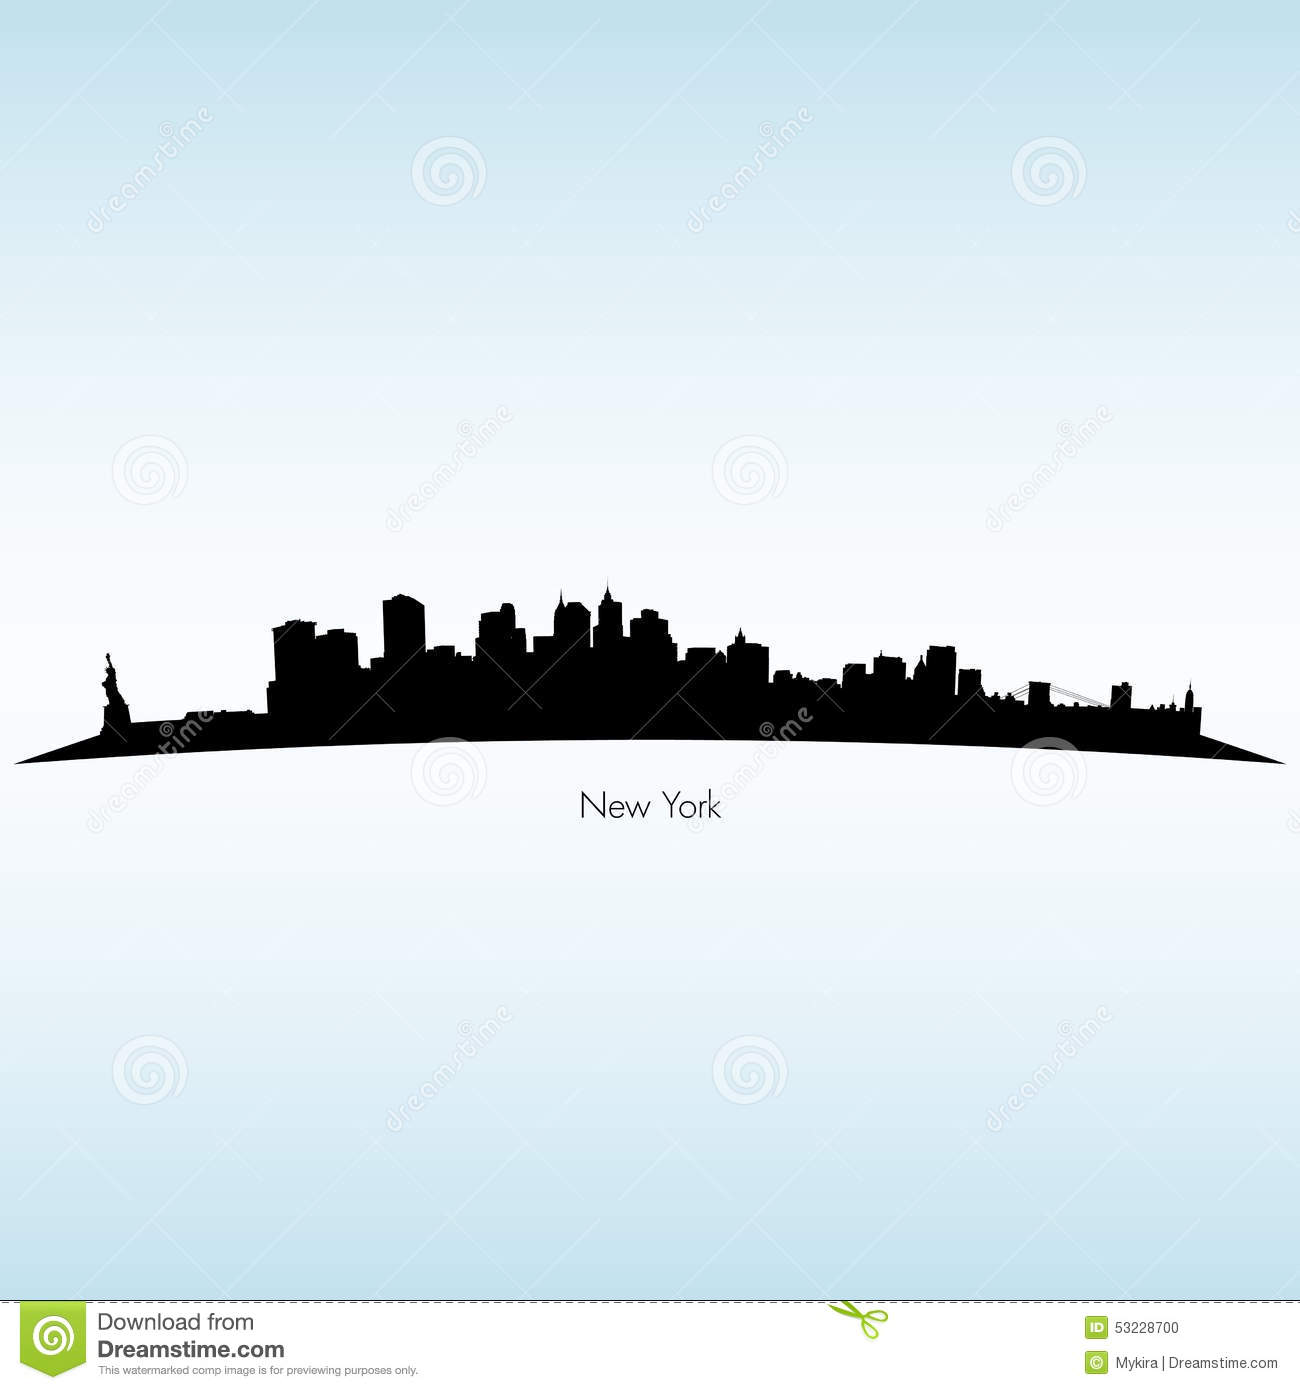 Clipart Images Of New York